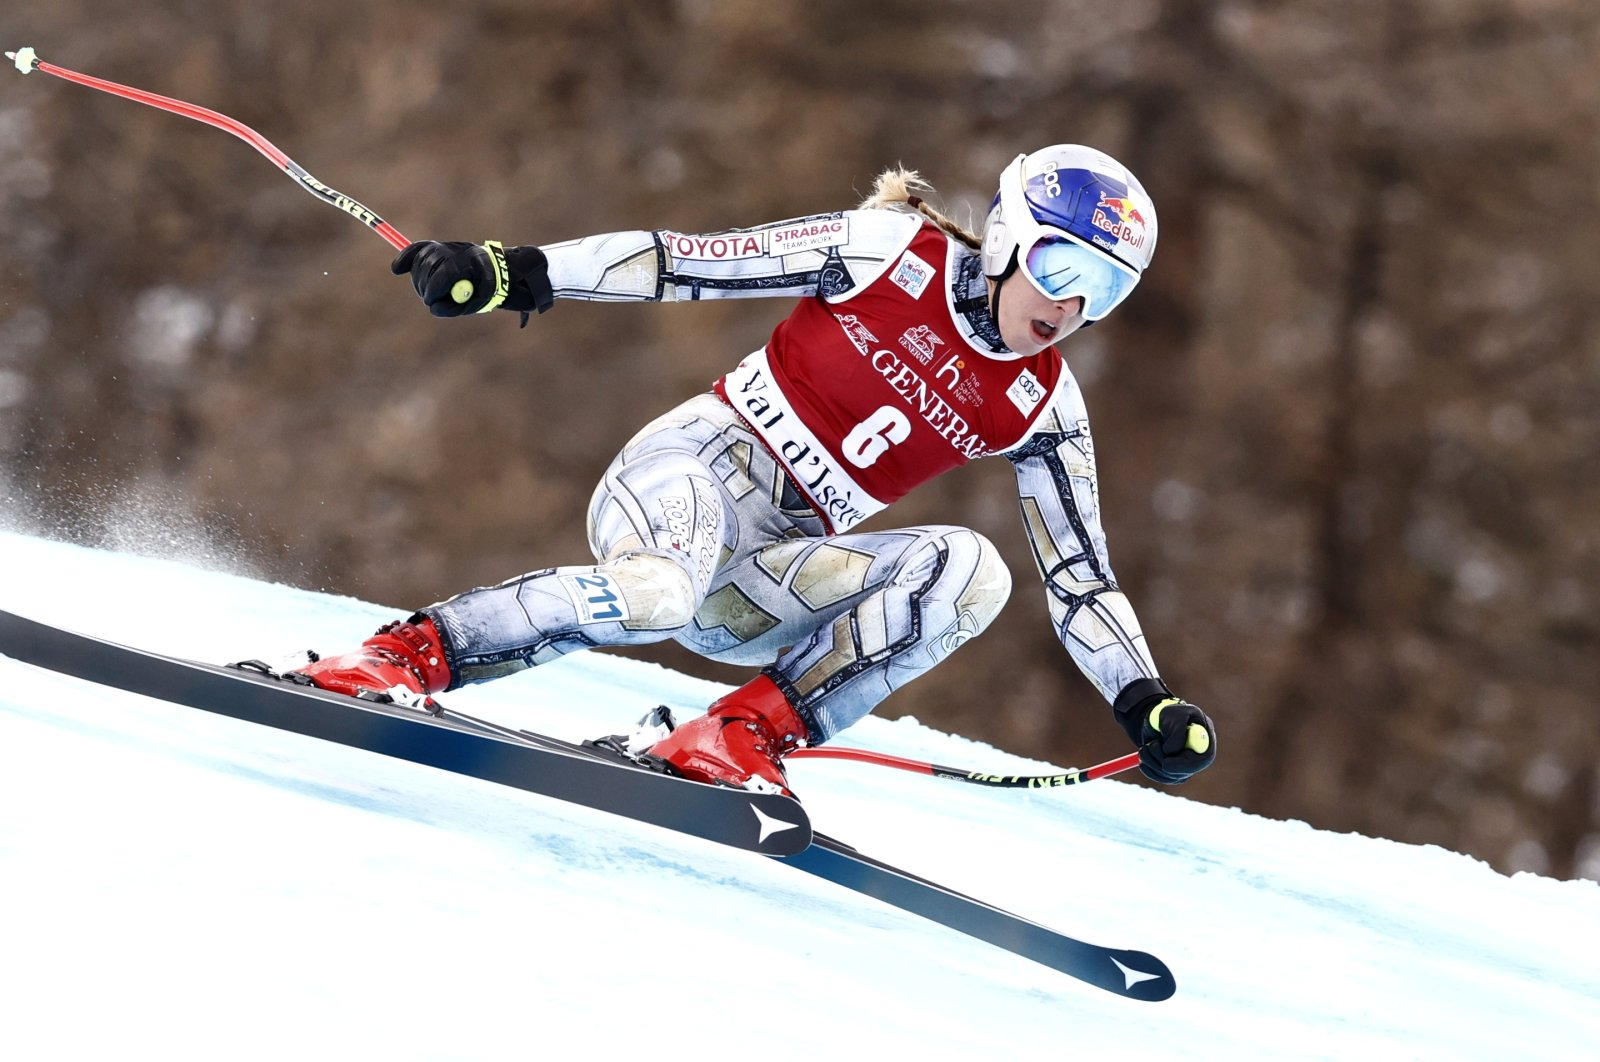 Ester Ledecka in action during the race in Val D'Isere, France, Dec. 20, 2020. (REUTERS PHOTO)